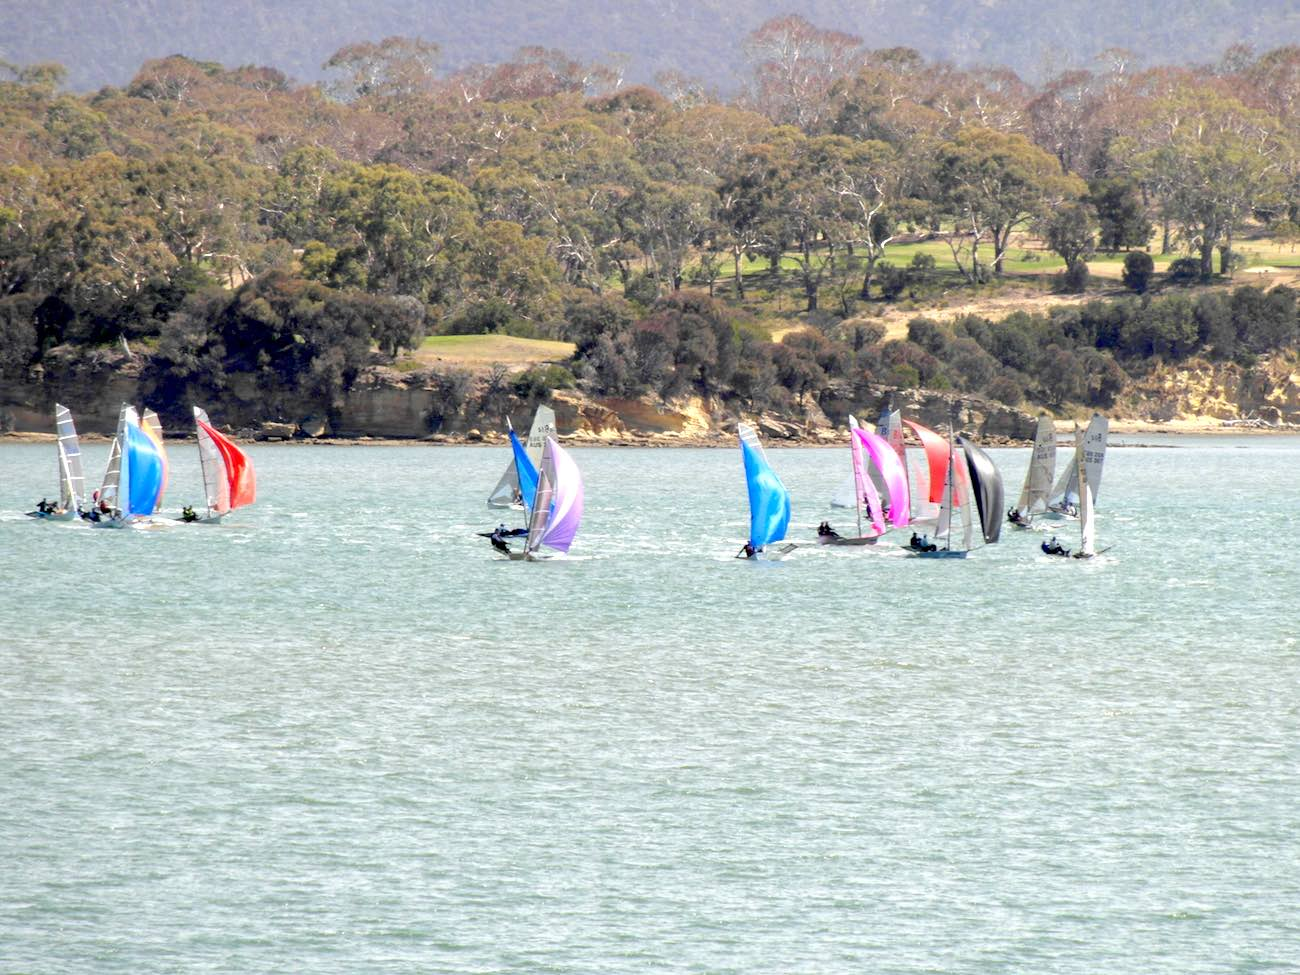 Spinnakers up